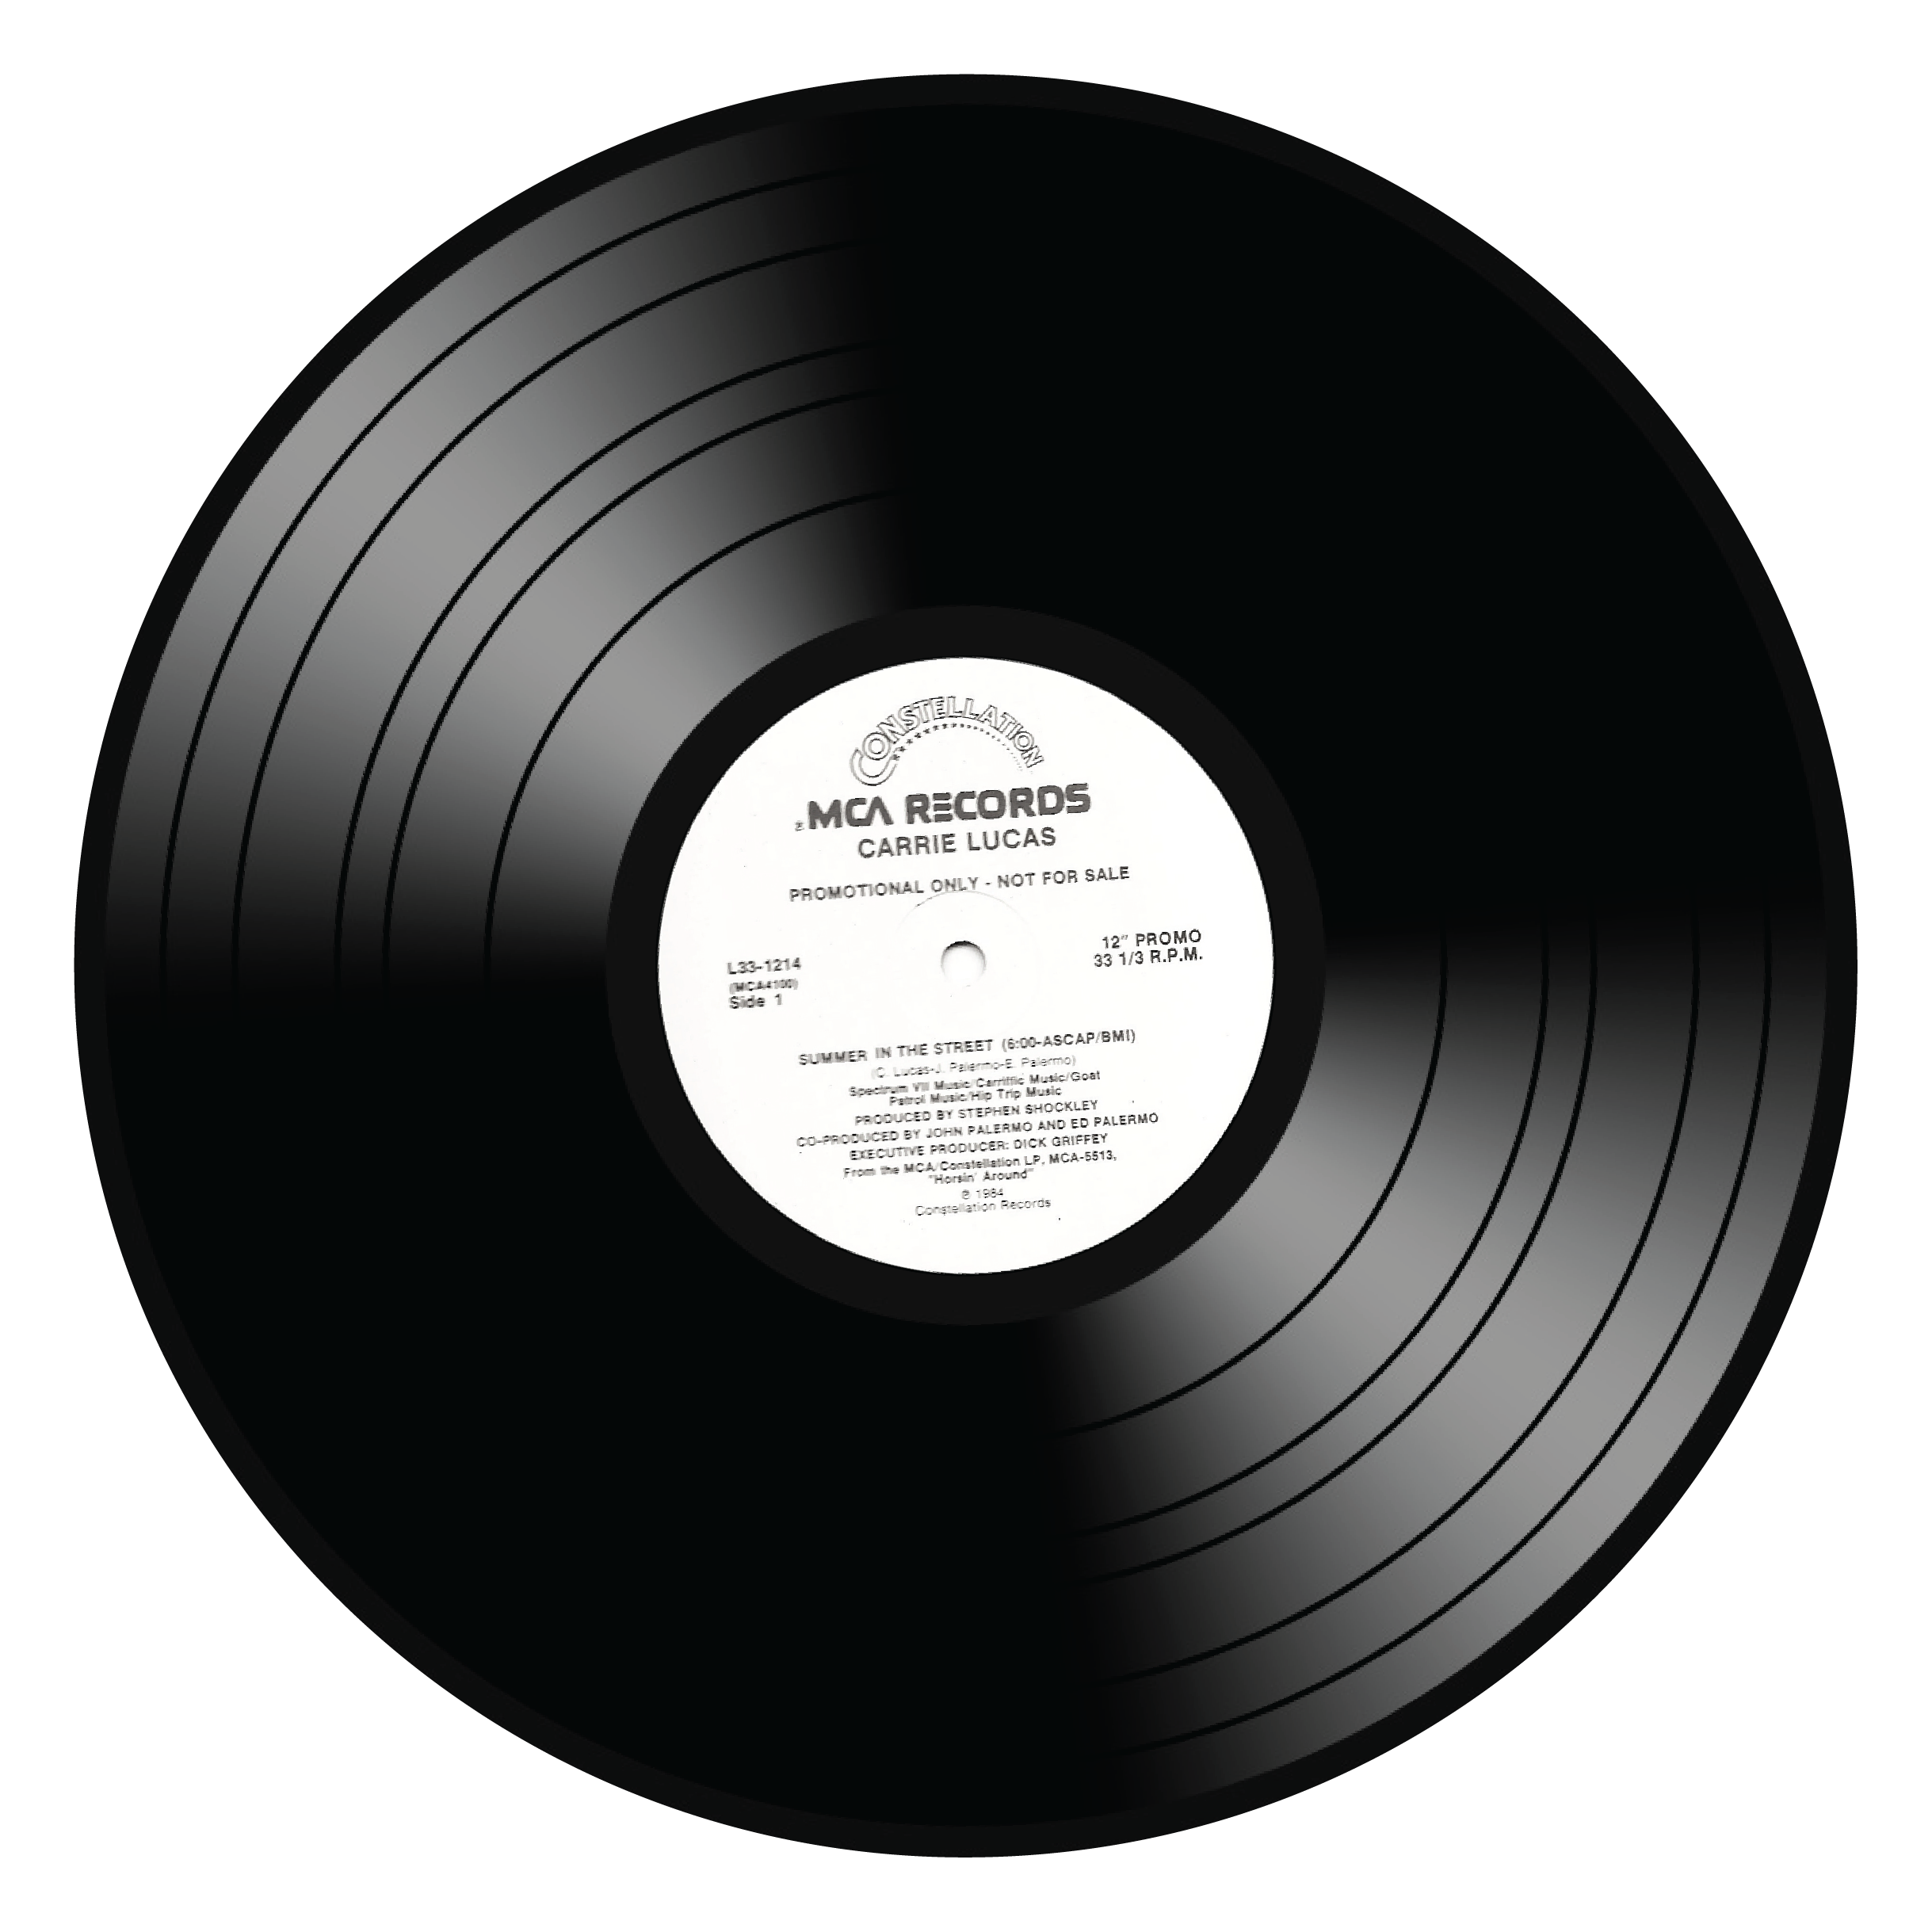 Vinyl Lp Records Clipart.